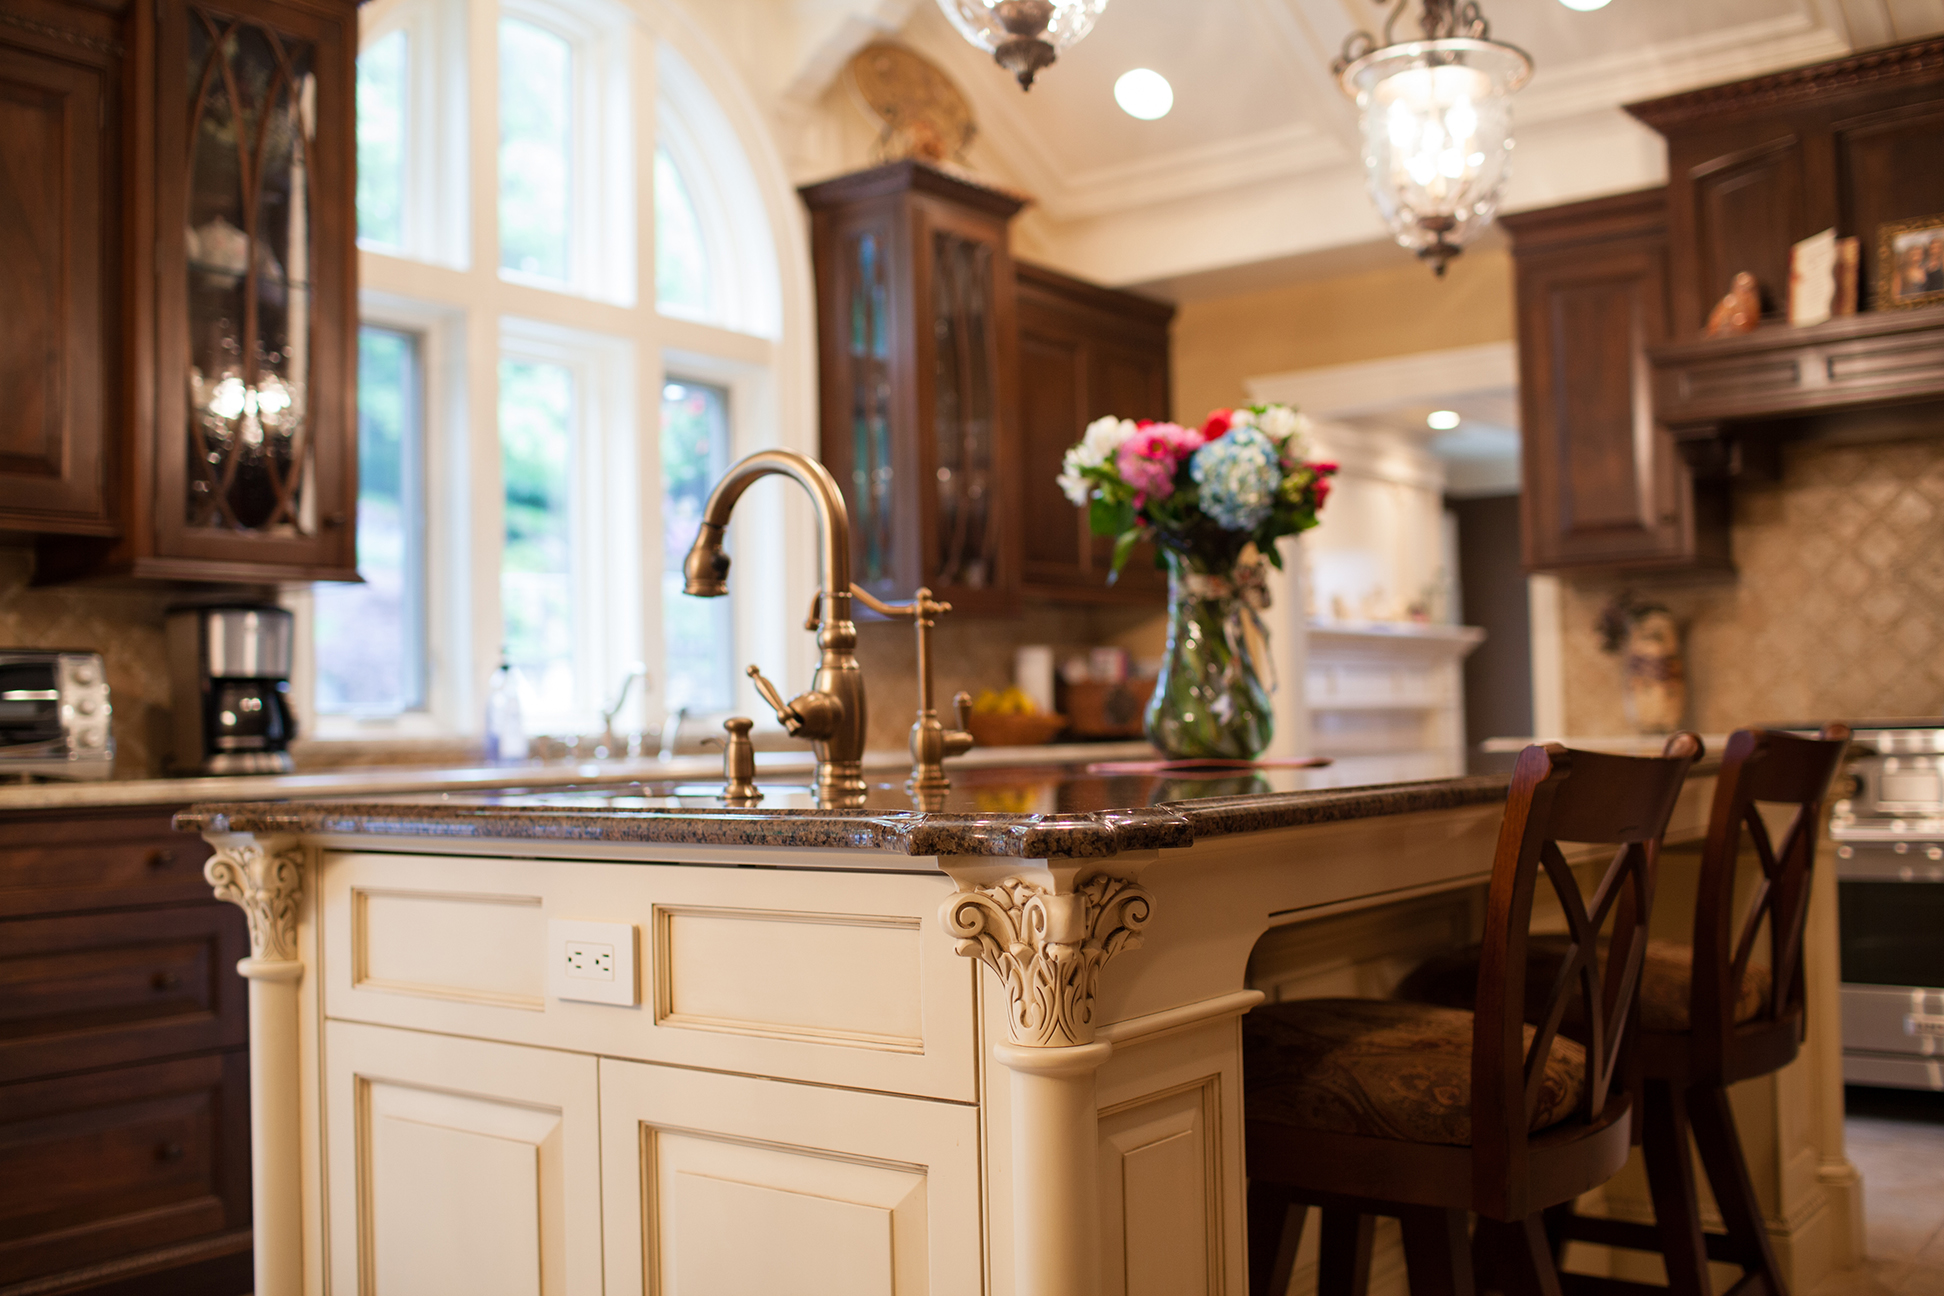 Kitchen Design, Roseland NJ